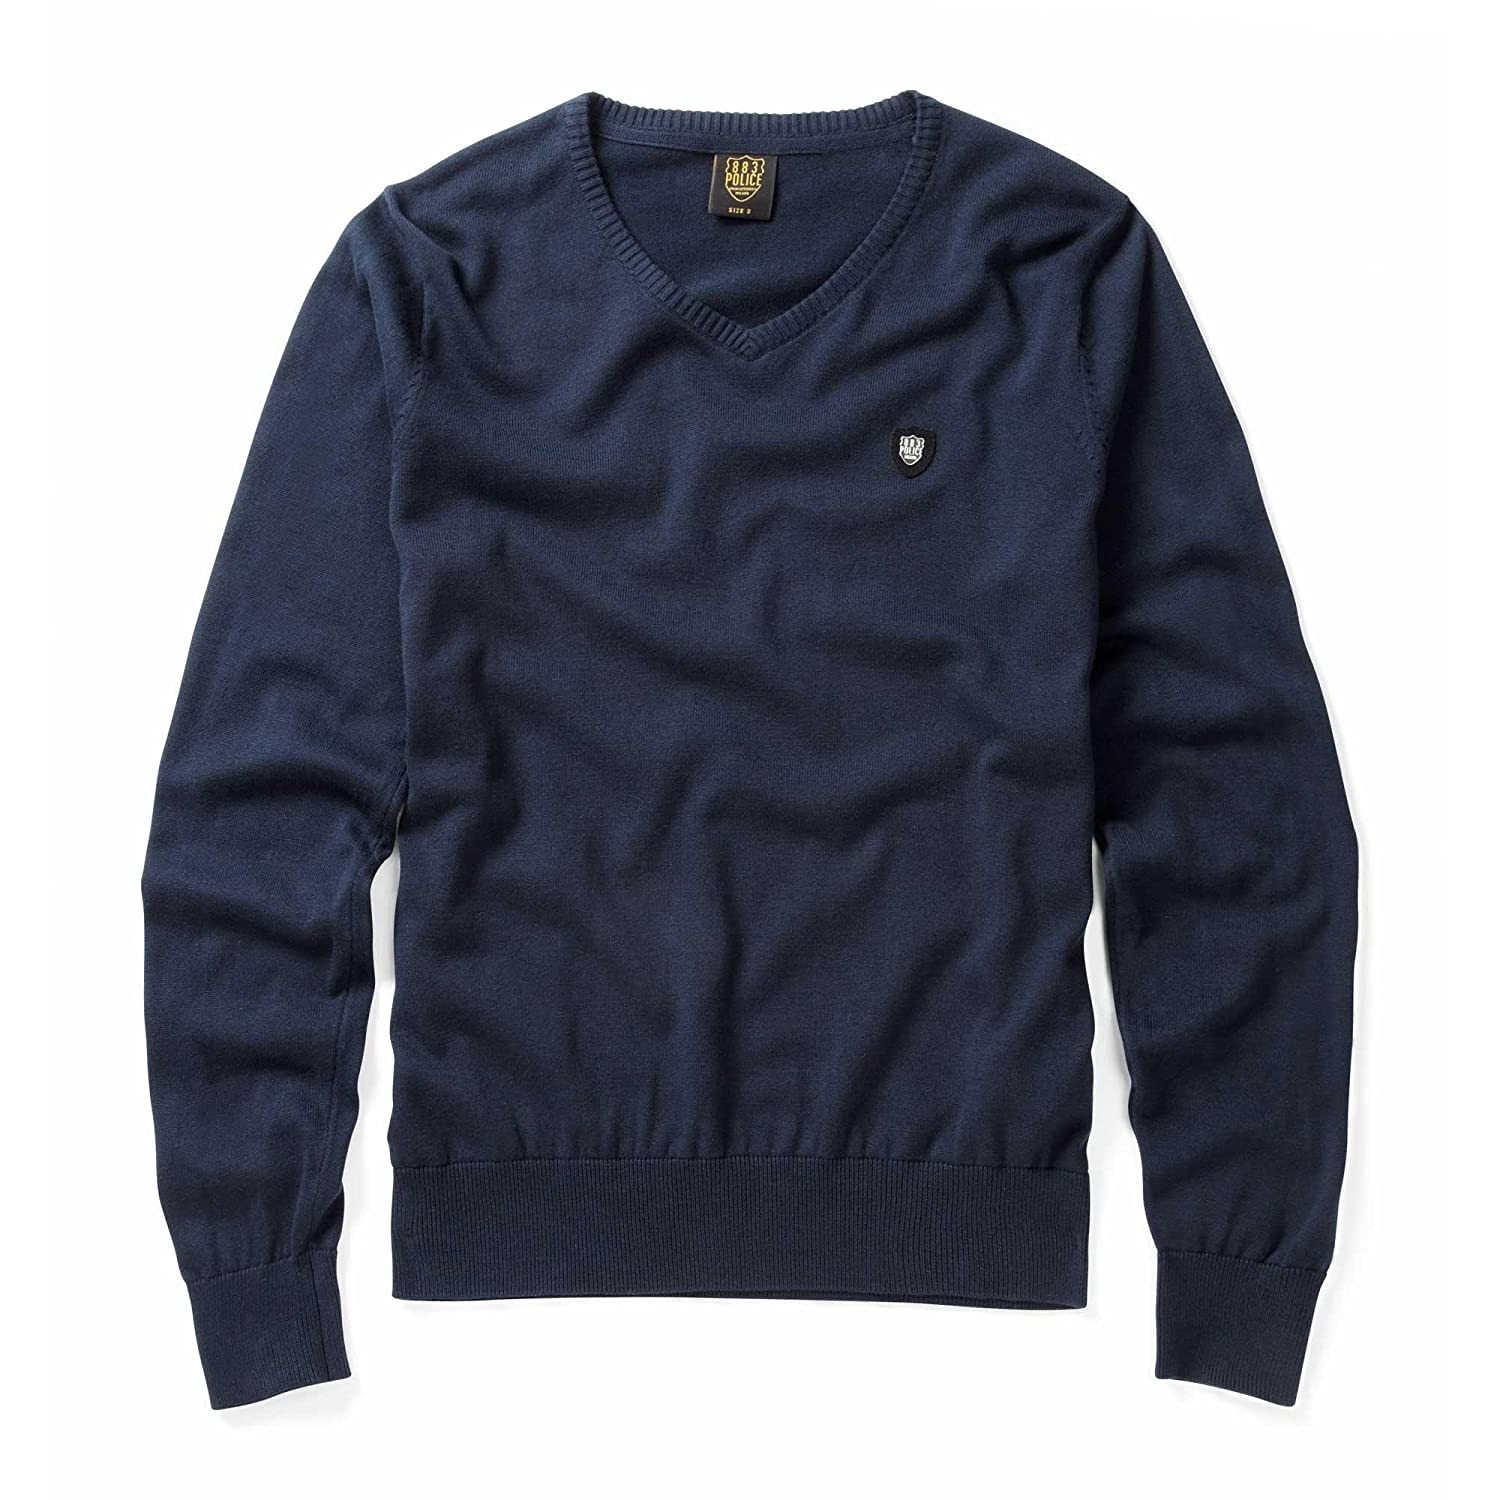 883 Police Mens Maccus Eclipse Navy Knitwear Top Sweater Long Sleeve Knit Jumper